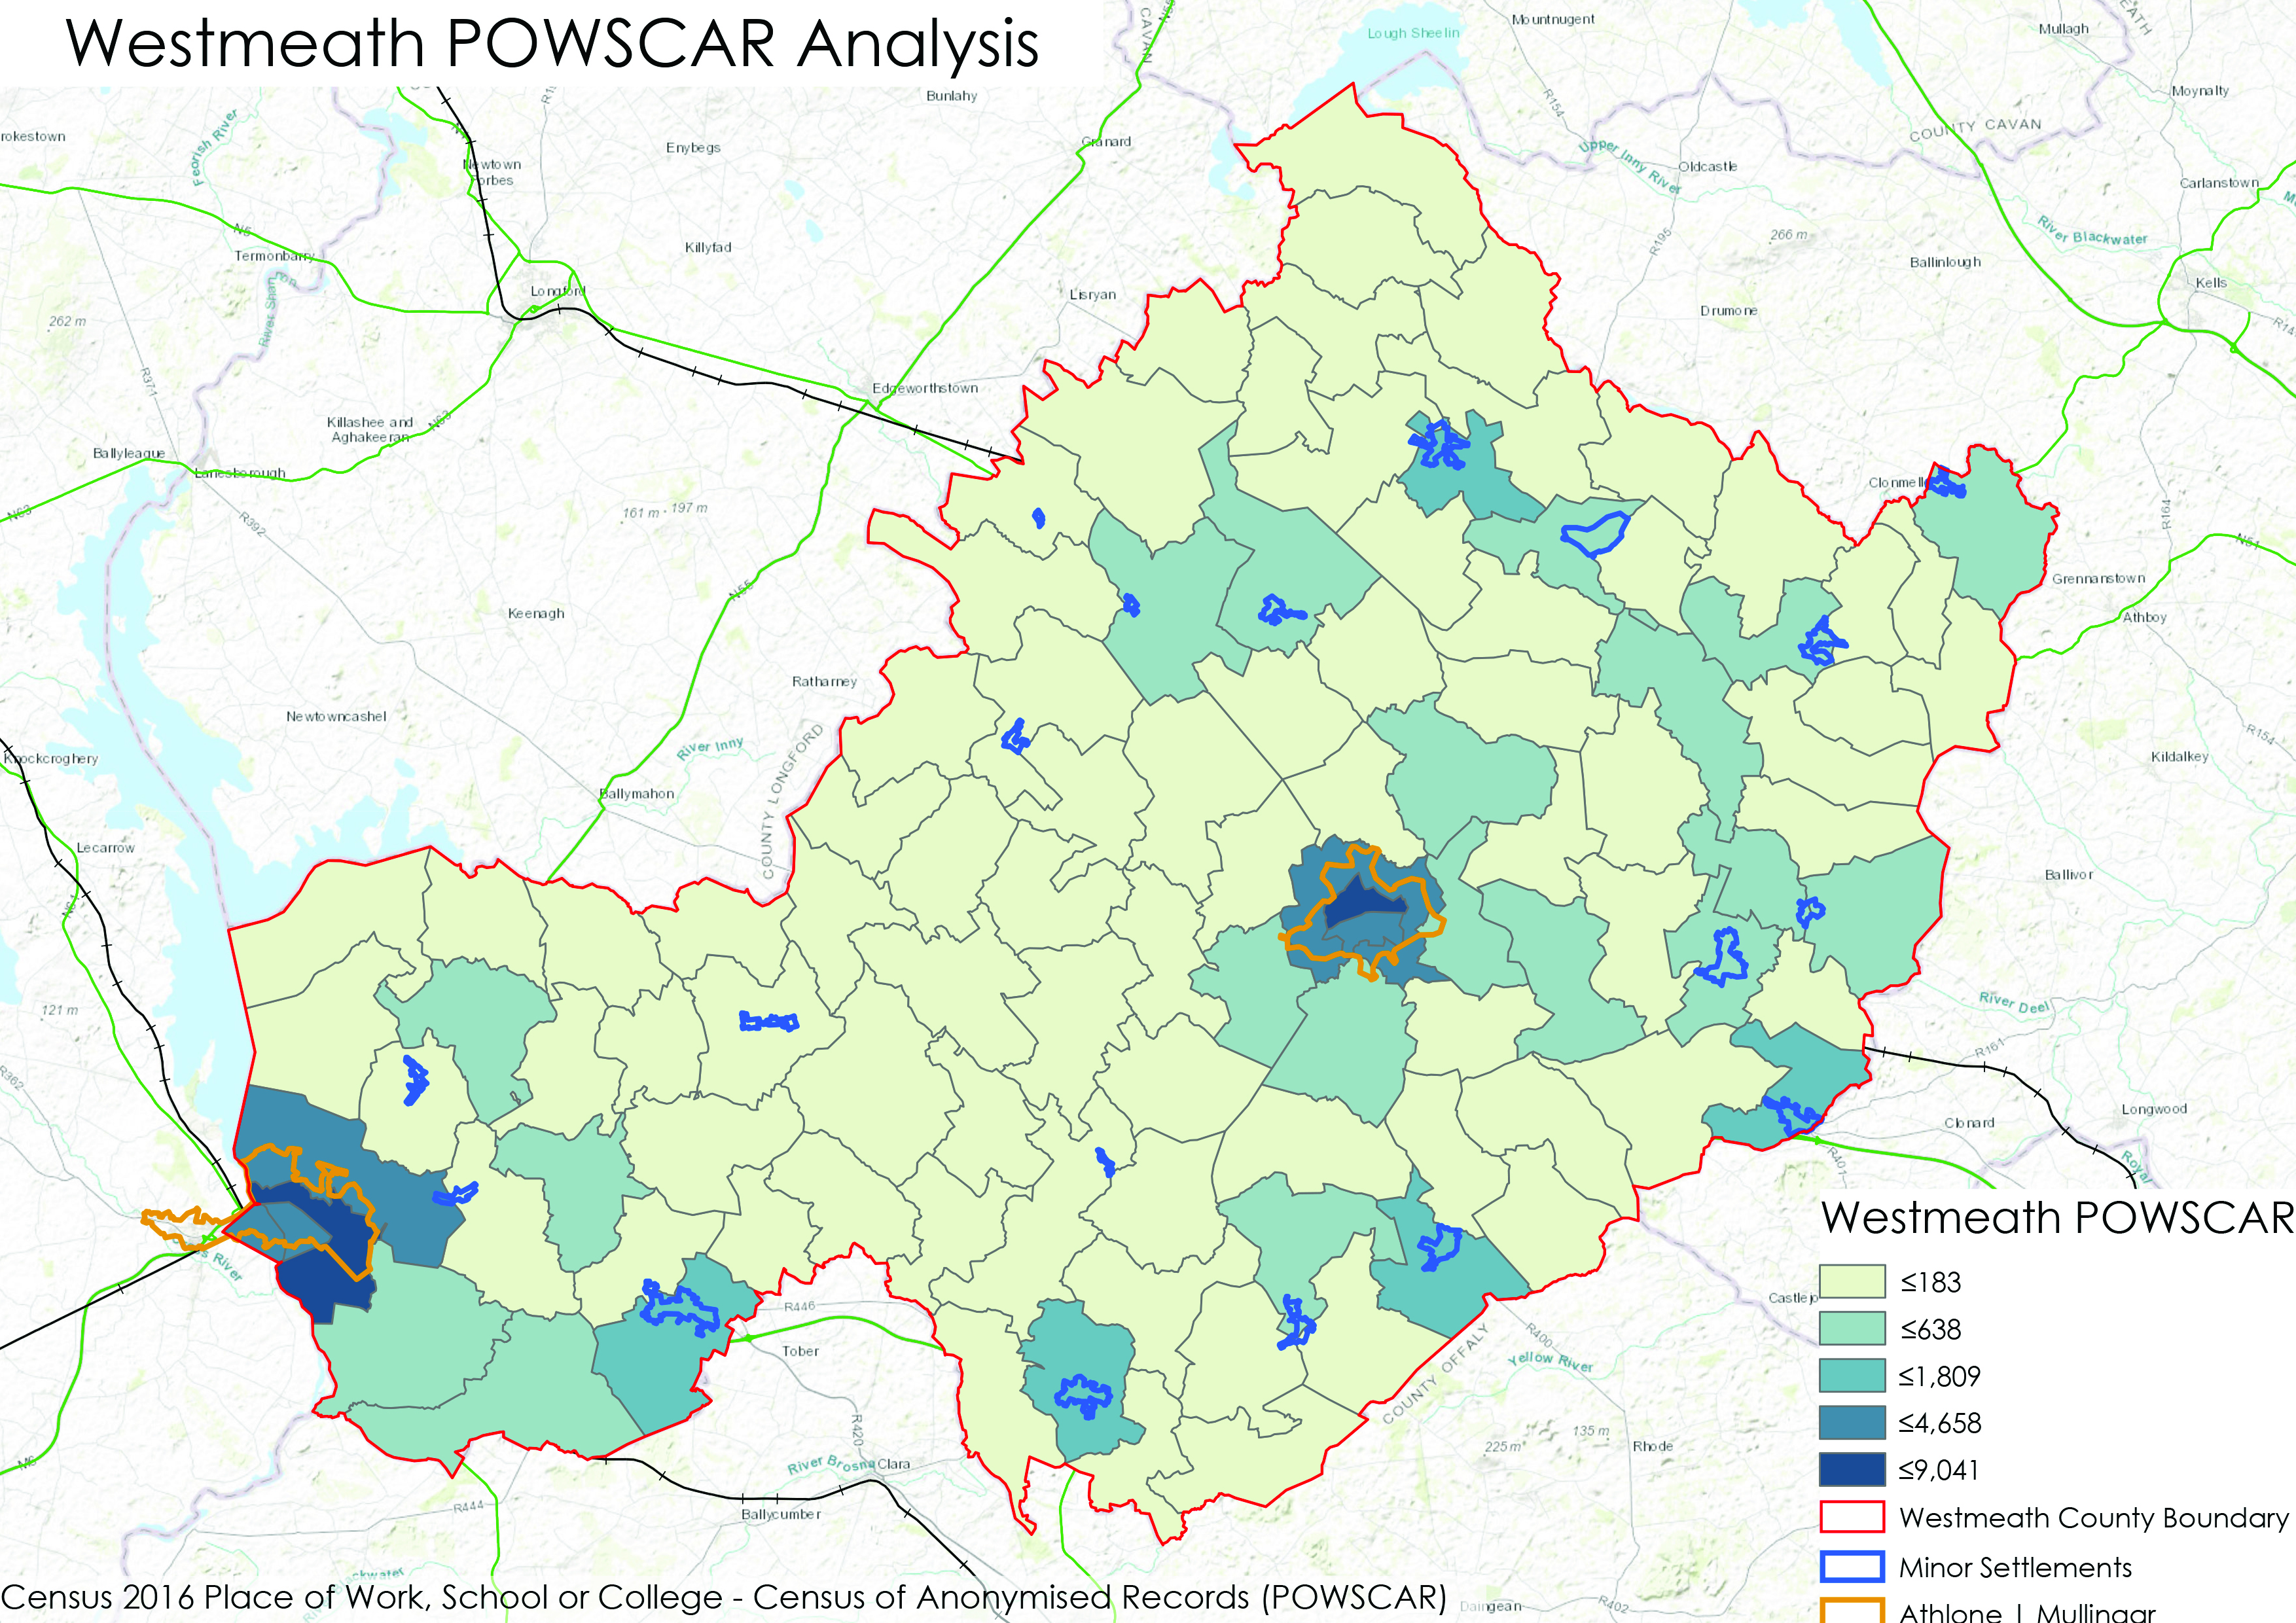 Figure 5.6 Westmeath Powscar Analysis of commuting